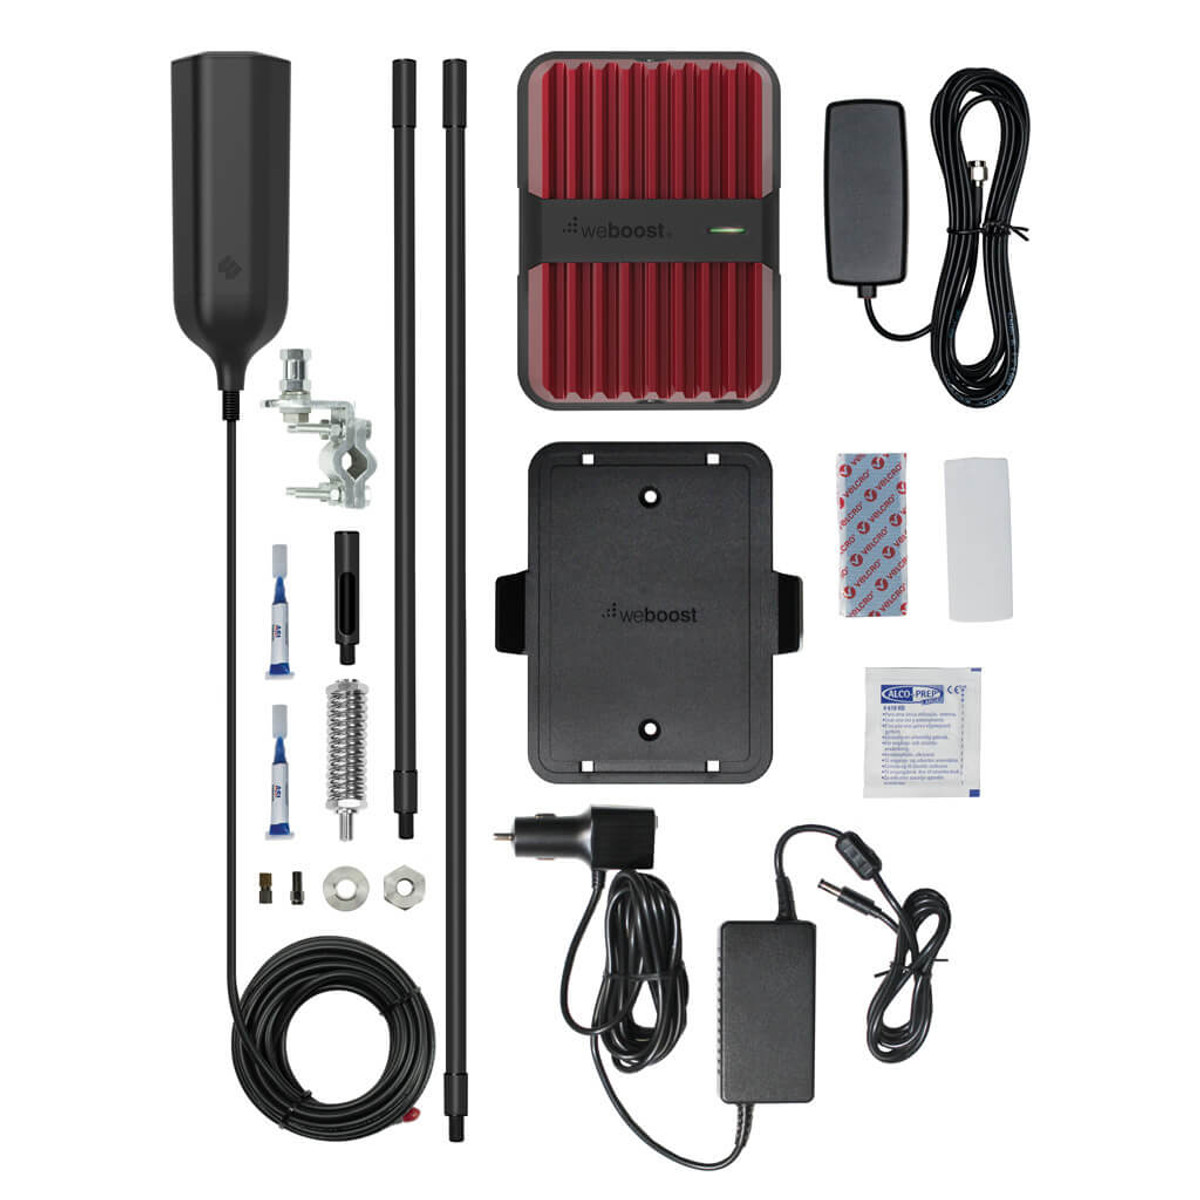 weBoost Drive Reach OTR Cell Phone Booster Kit - 652154